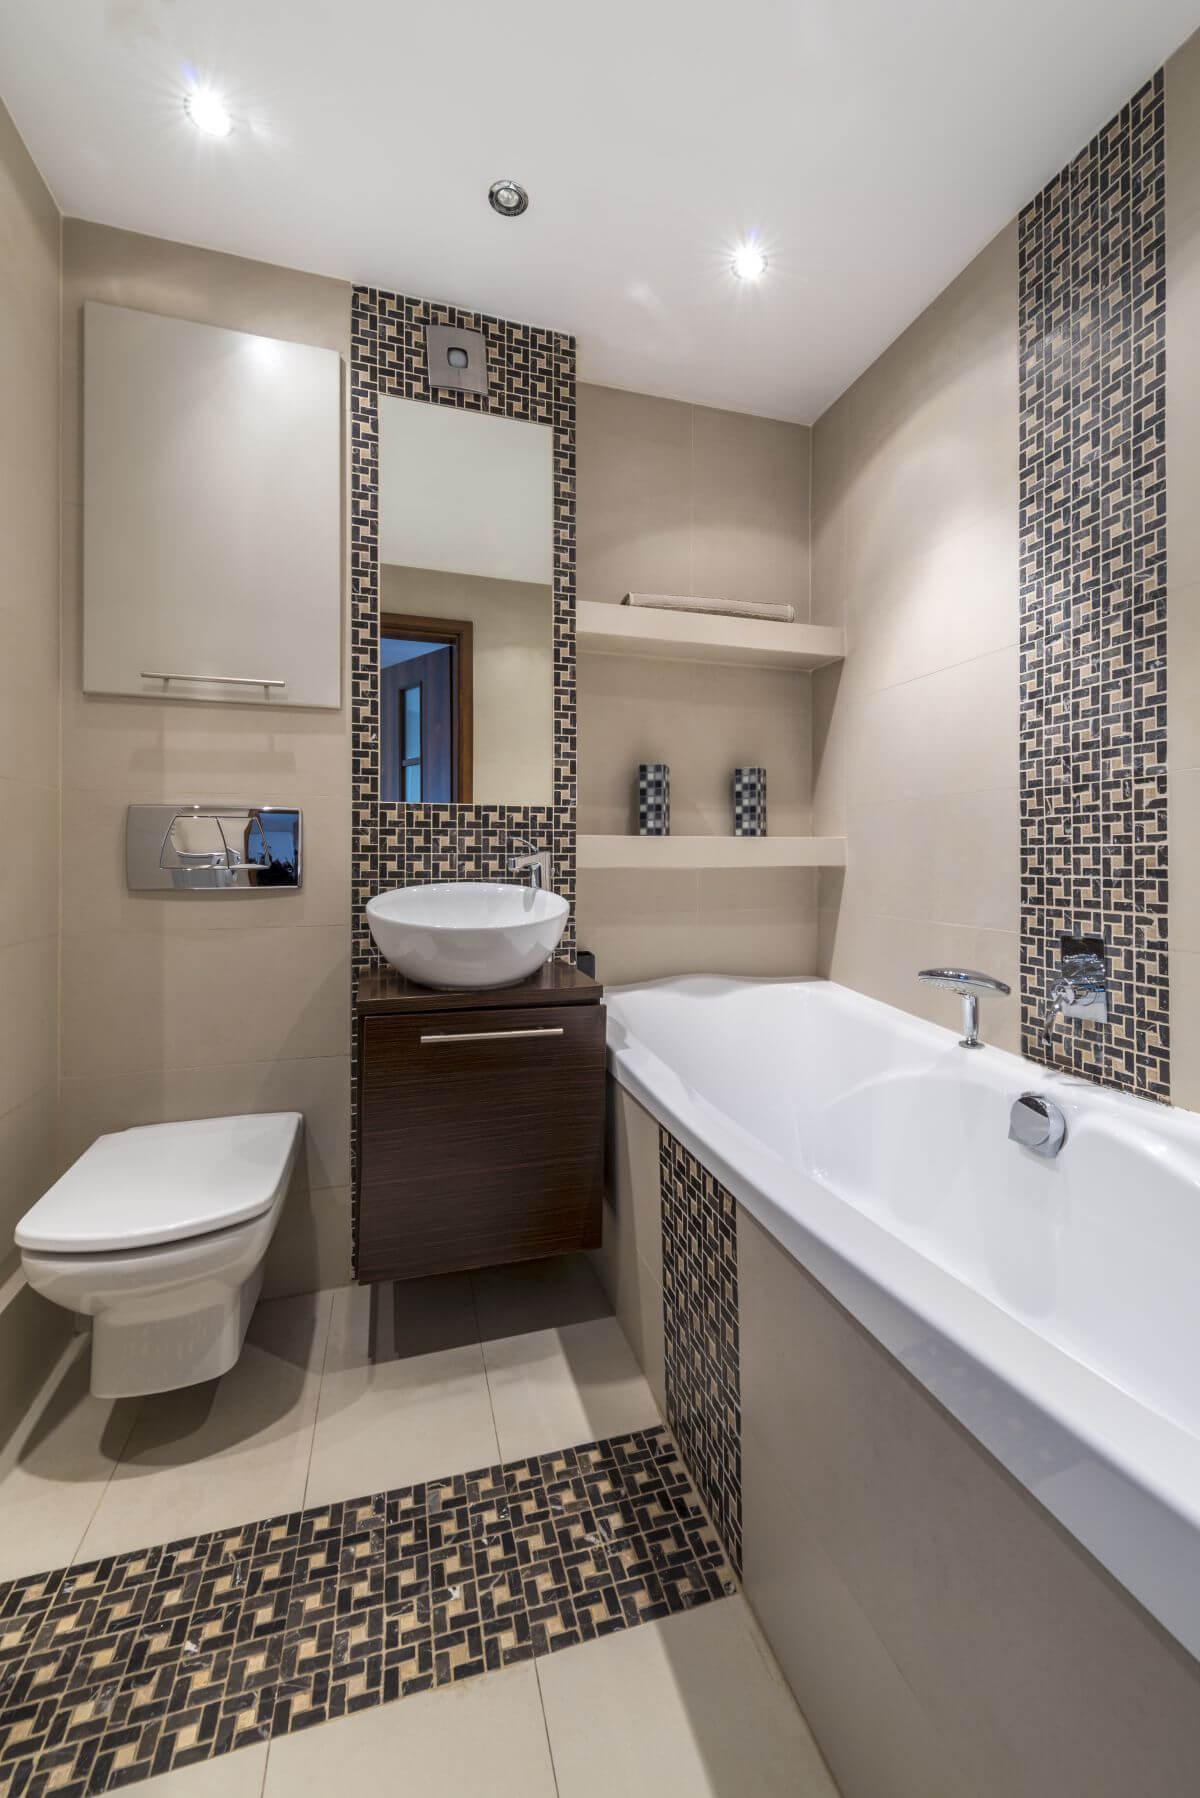 minimalist design with repeated tile patterns - Bathroom Design Ideas For Small Rooms